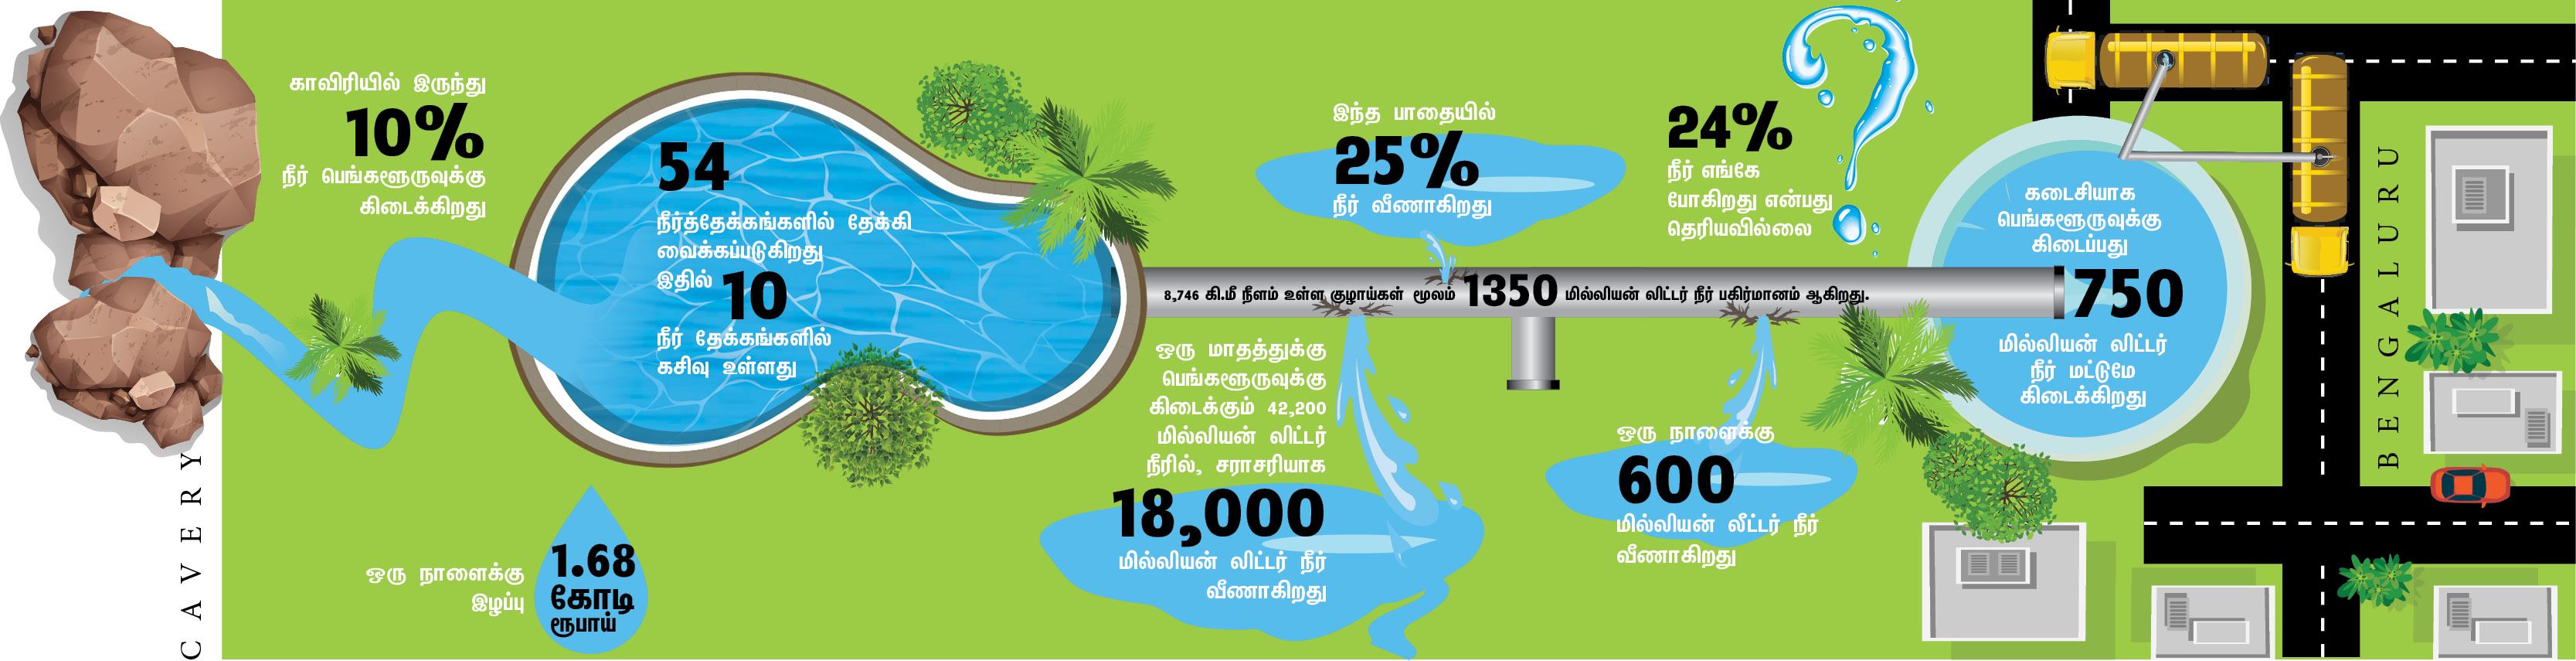 Bengaluru Wasteage of 50% cauvery Water